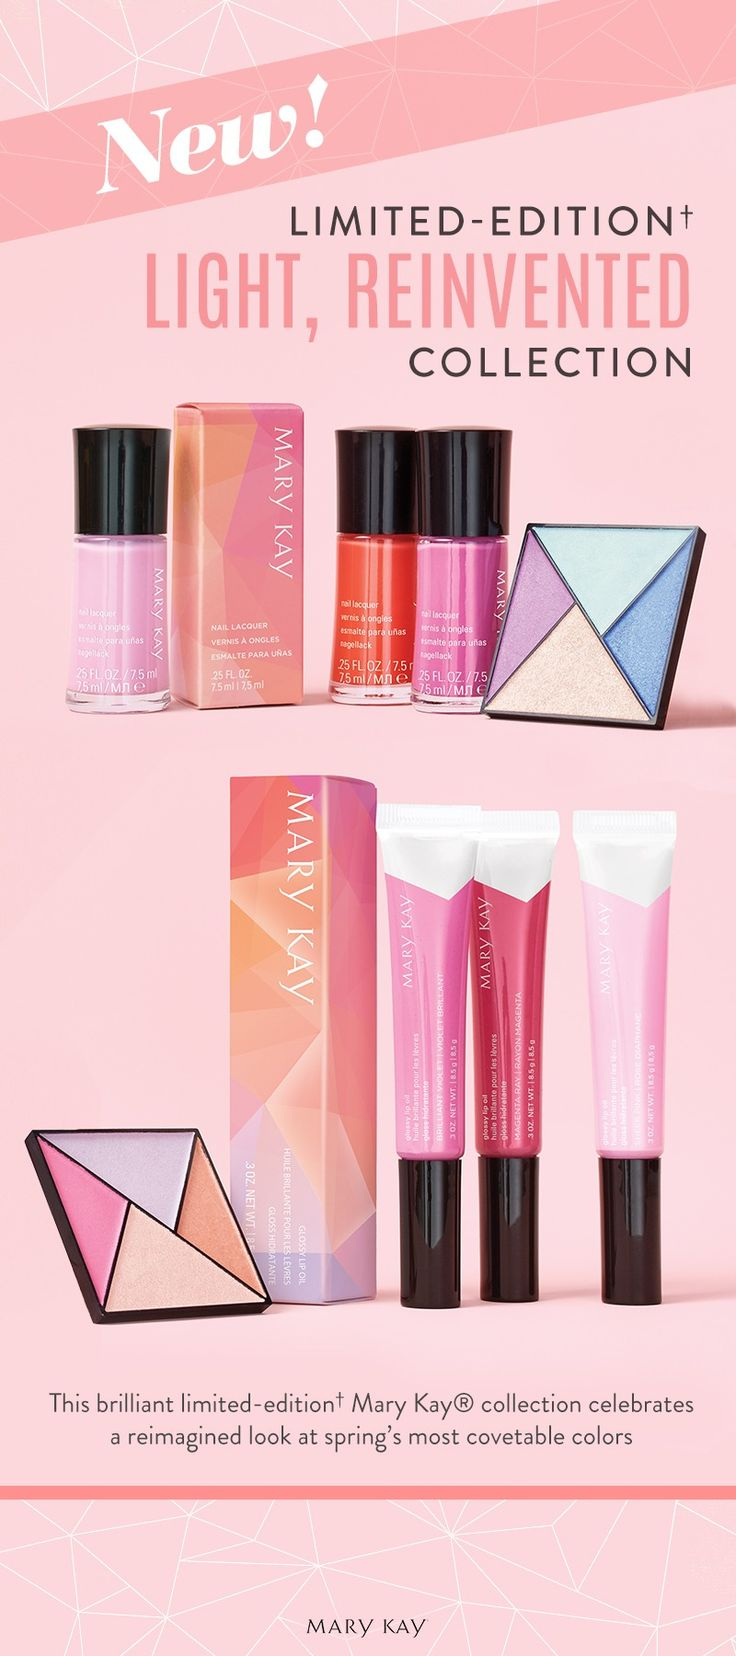 Our favorite spring shades, just in time for the new season! The new Limited-Edition† Light, Reinvented Collection borrows inspiration from vivid springtime florals with gorgeous pinks, purples and reds for your eyes, lips and nails! | Mary Kay